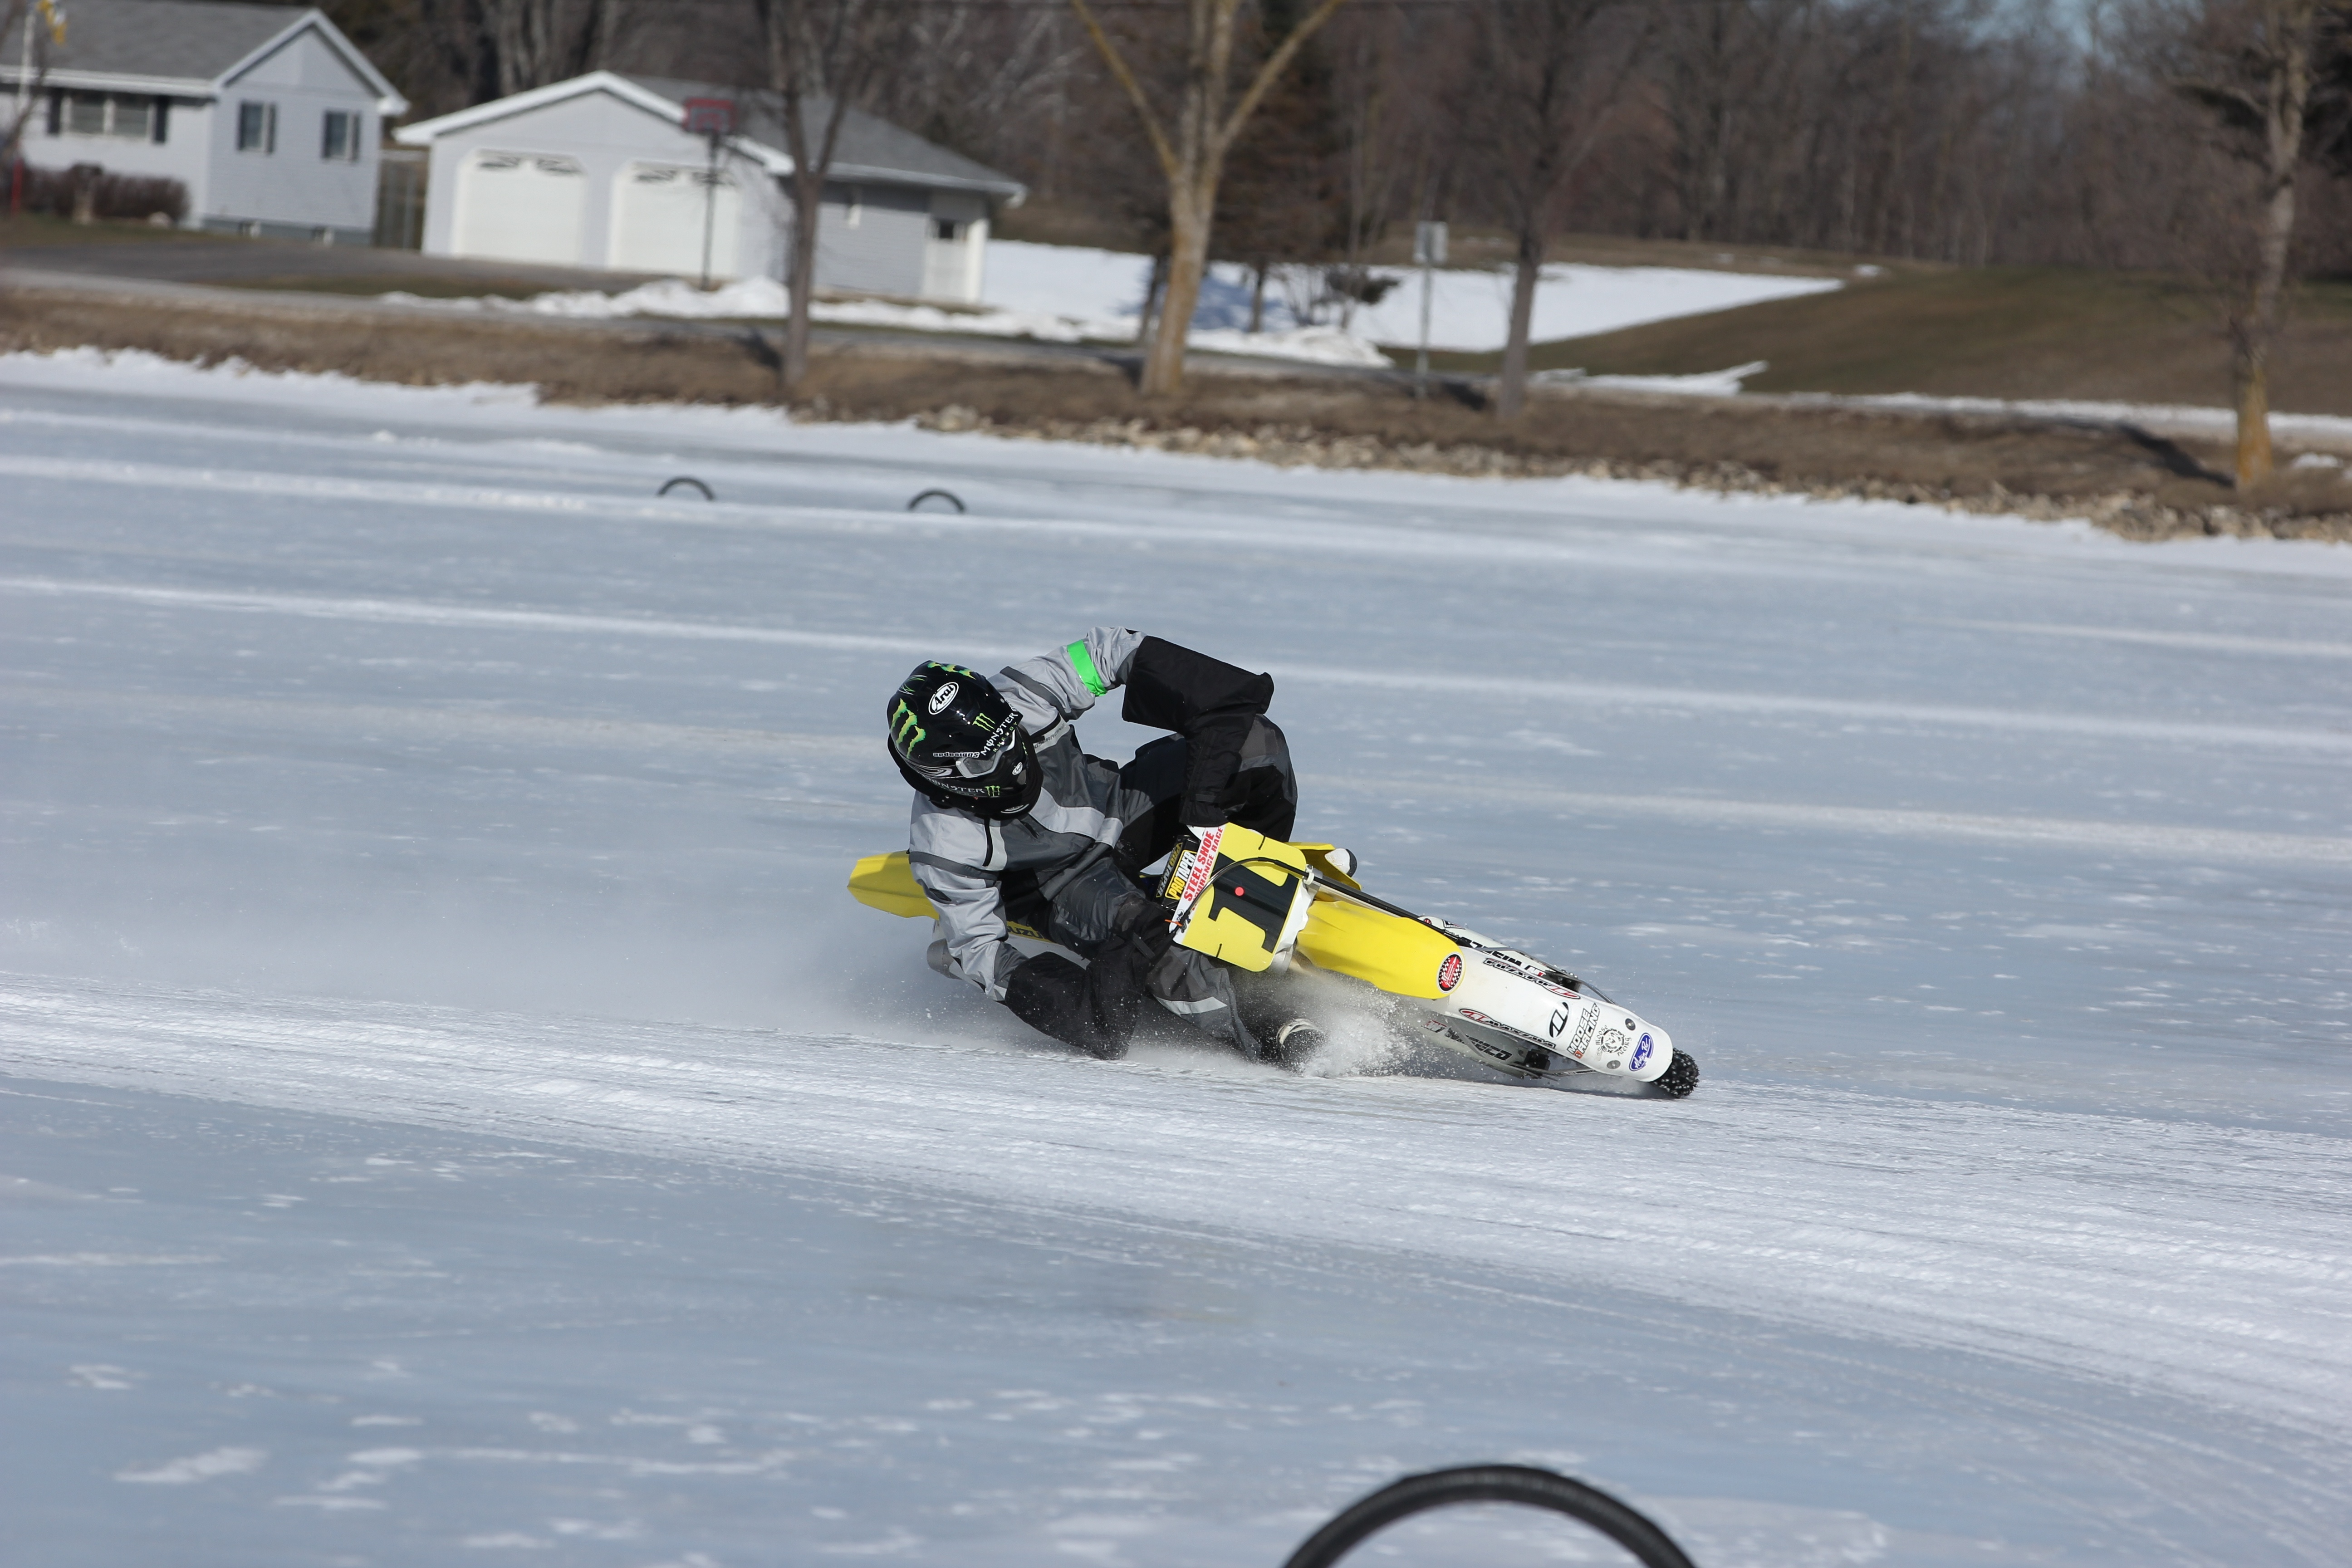 Ice Racing: An Inside Look at Racing your Dirt Bike on the Ice